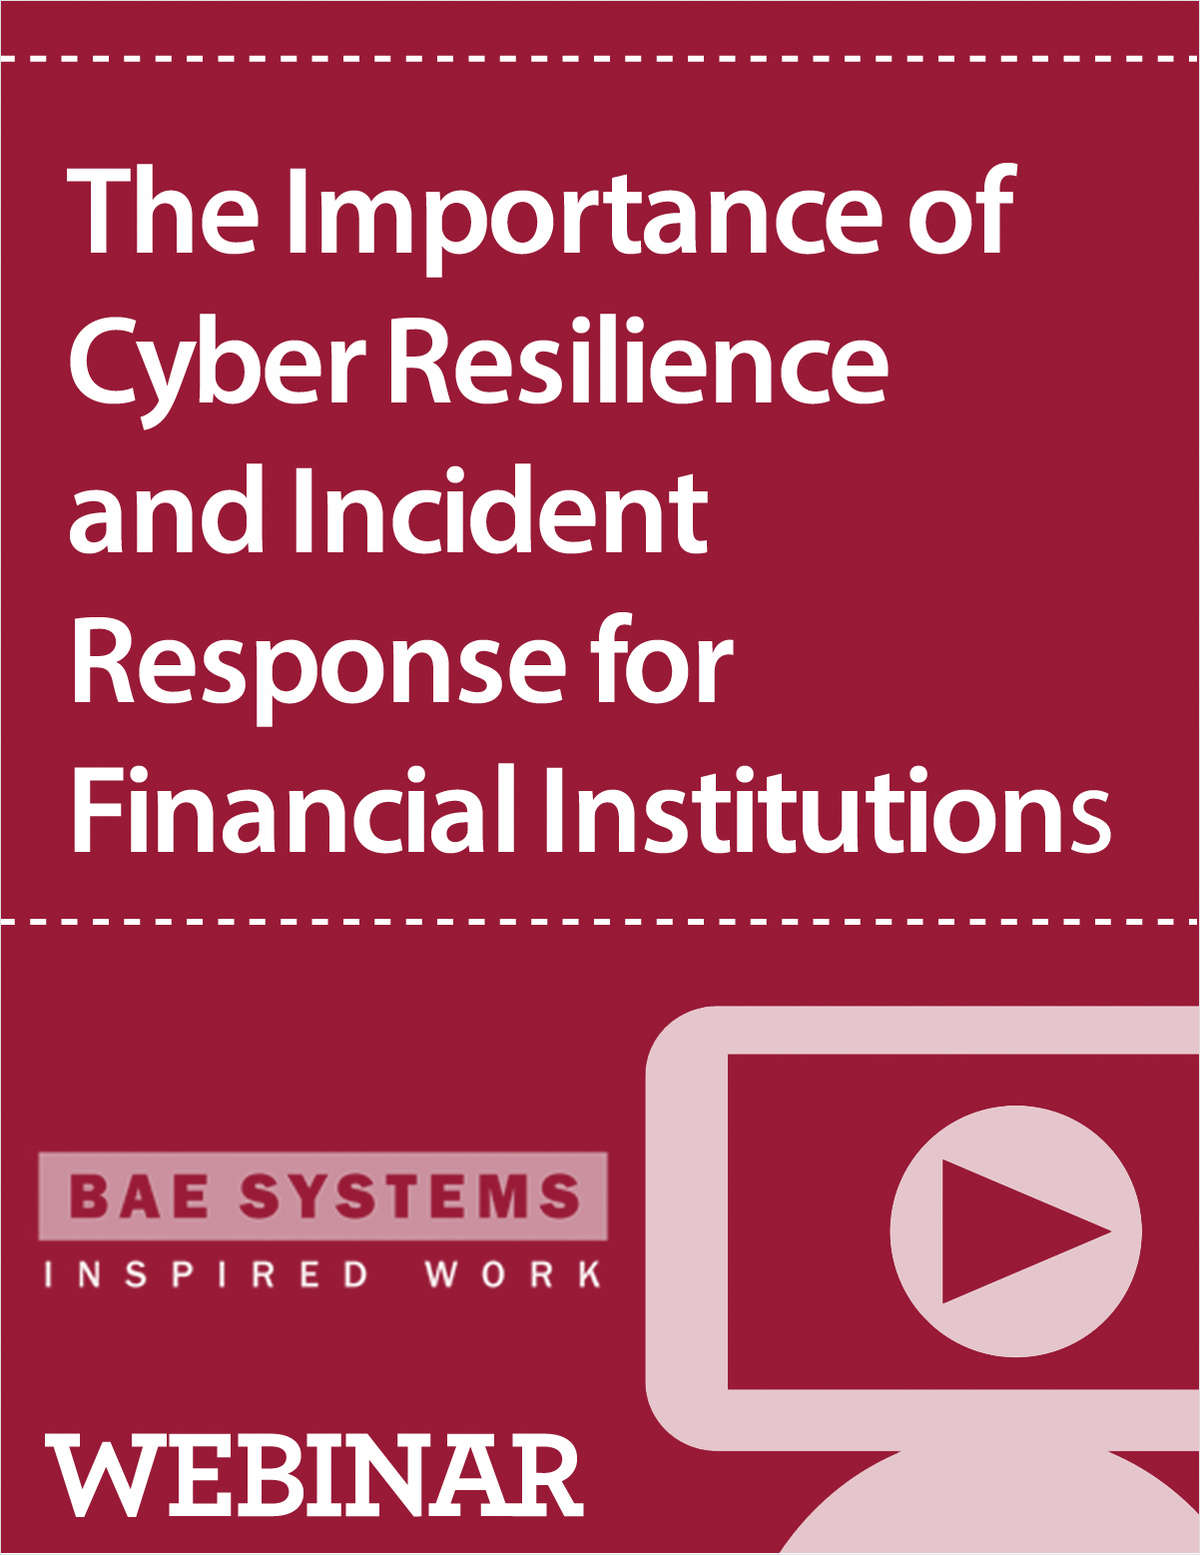 The Importance of Cyber Resilience and Incident Response for Financial Institutions